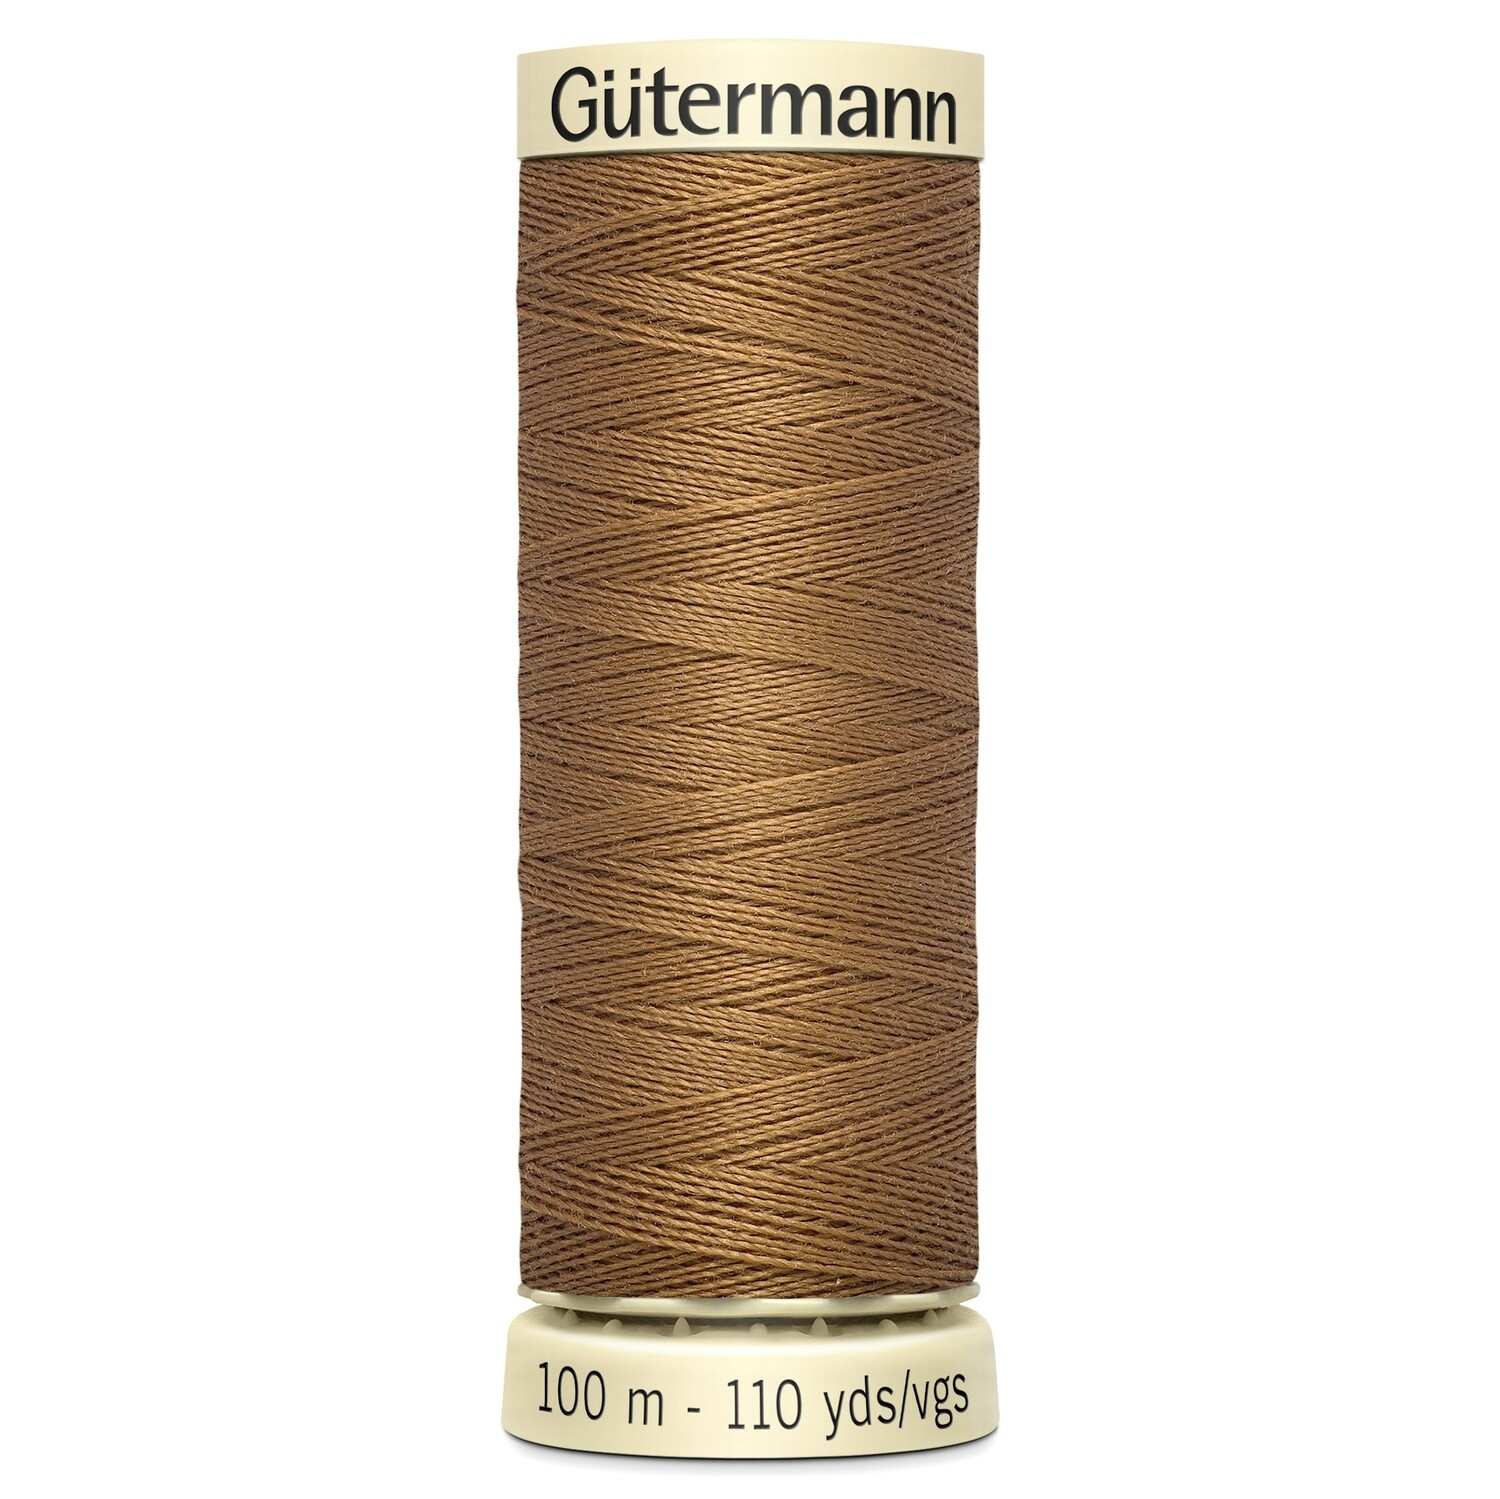 Gutermann Sew-All thread 877